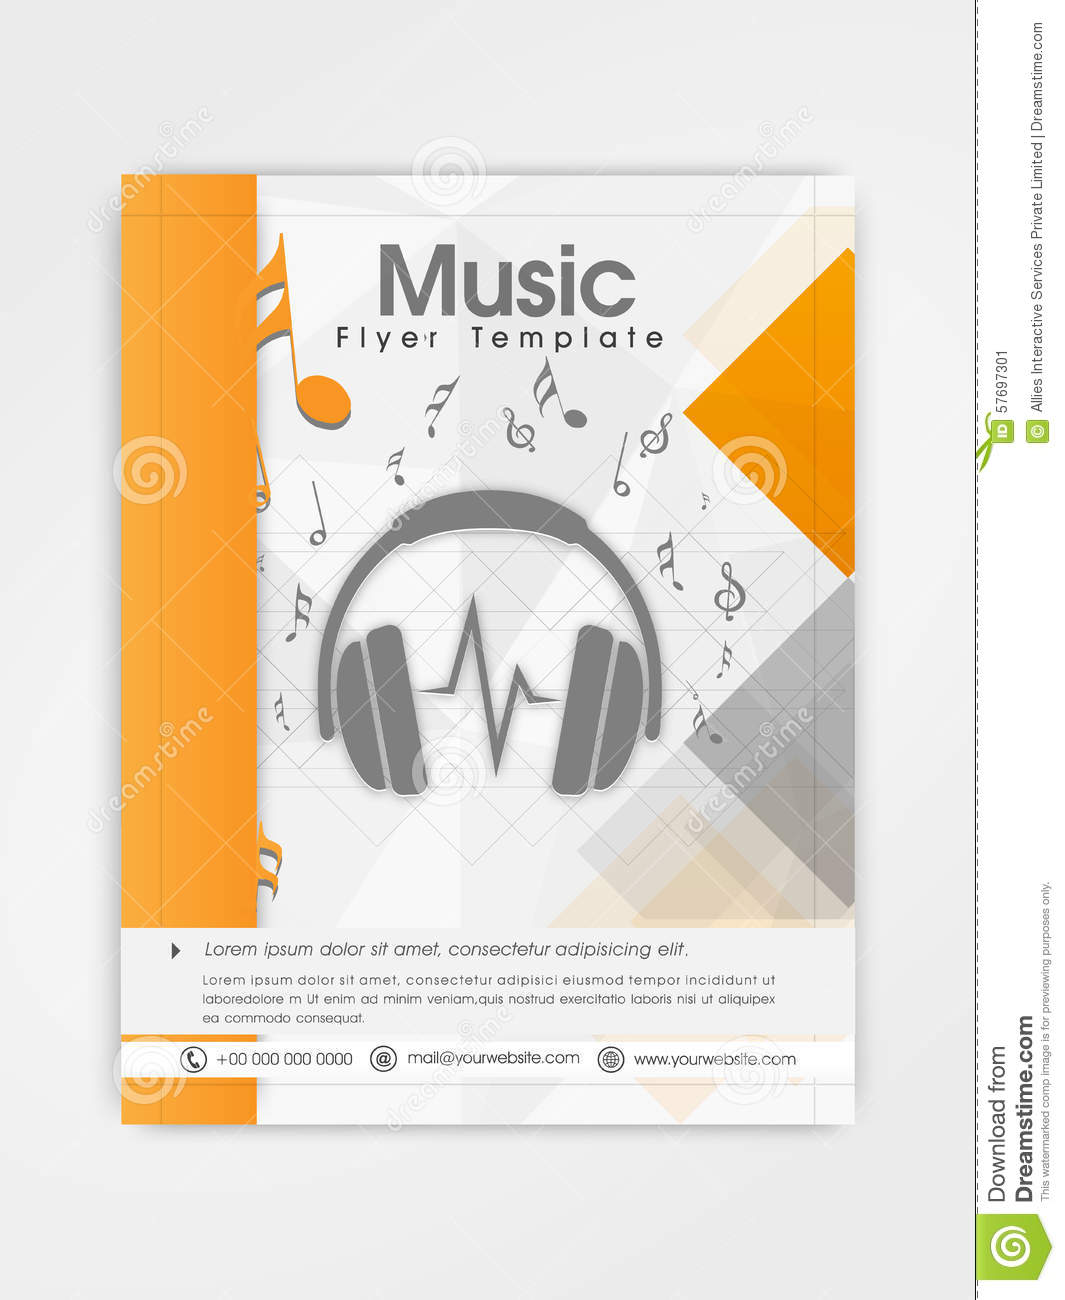 Template brochure or flyer design for music stock for Music brochure templates